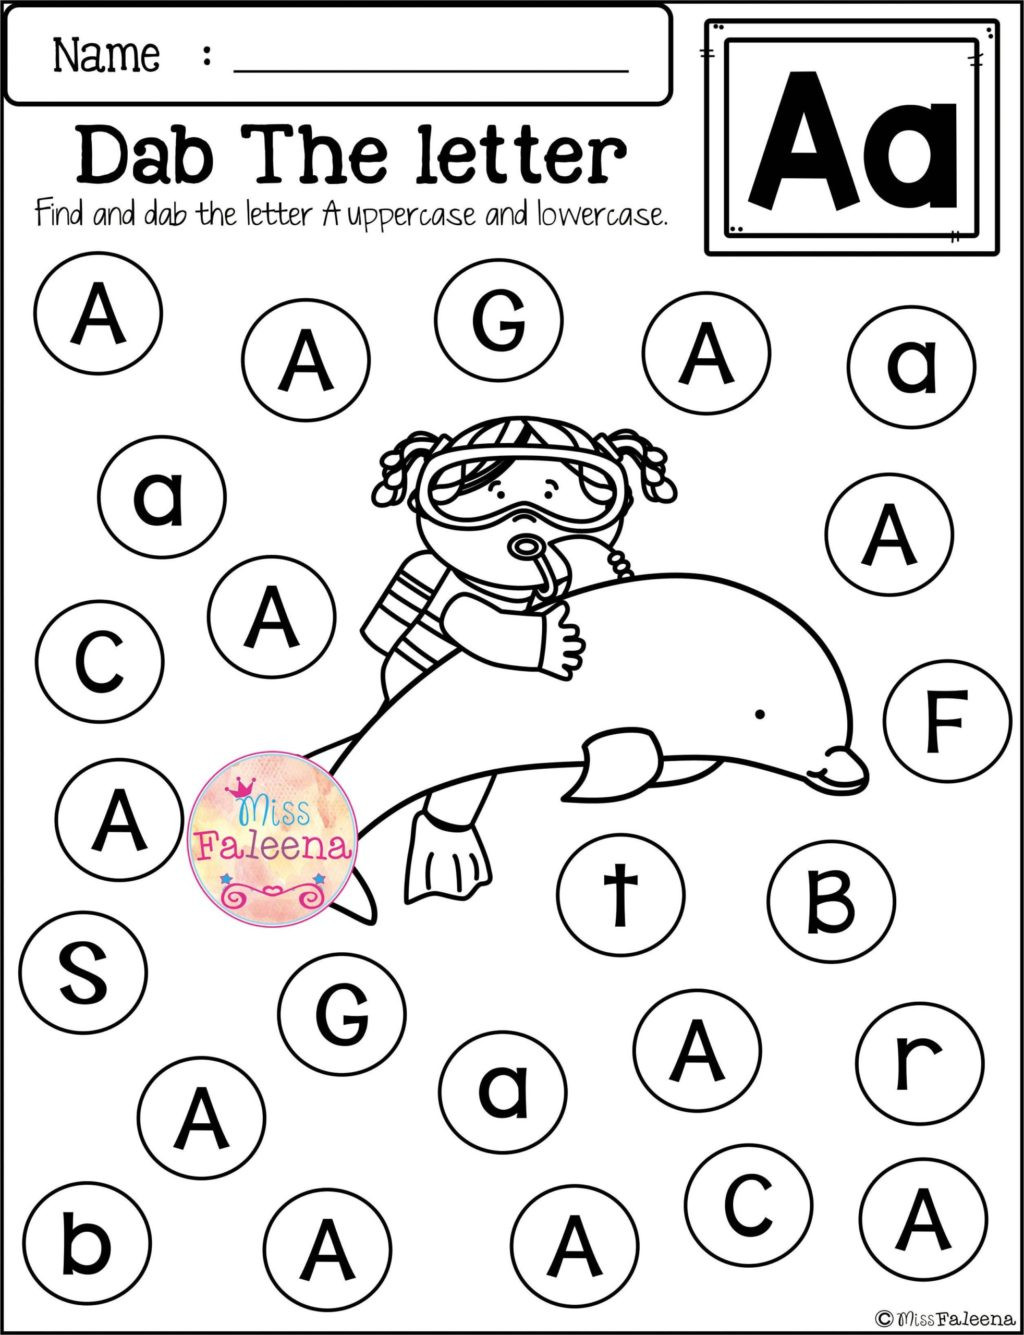 Spanish Alphabet Chart Printable Worksheet Worksheet Free Printablehabet Sheets for